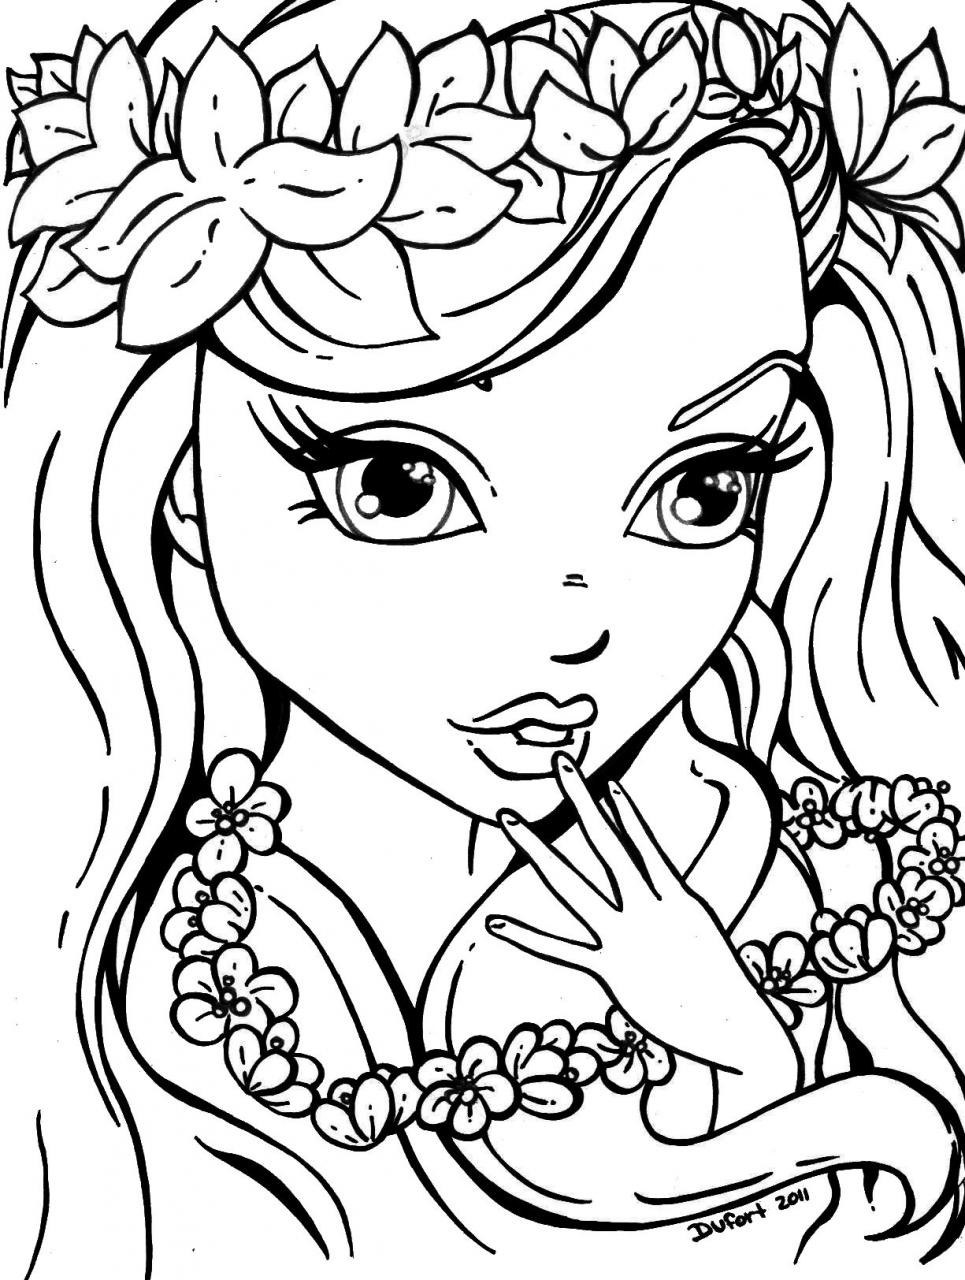 Coloring Pages For Girls That You Can Print  coloring pages for girls that you can print free